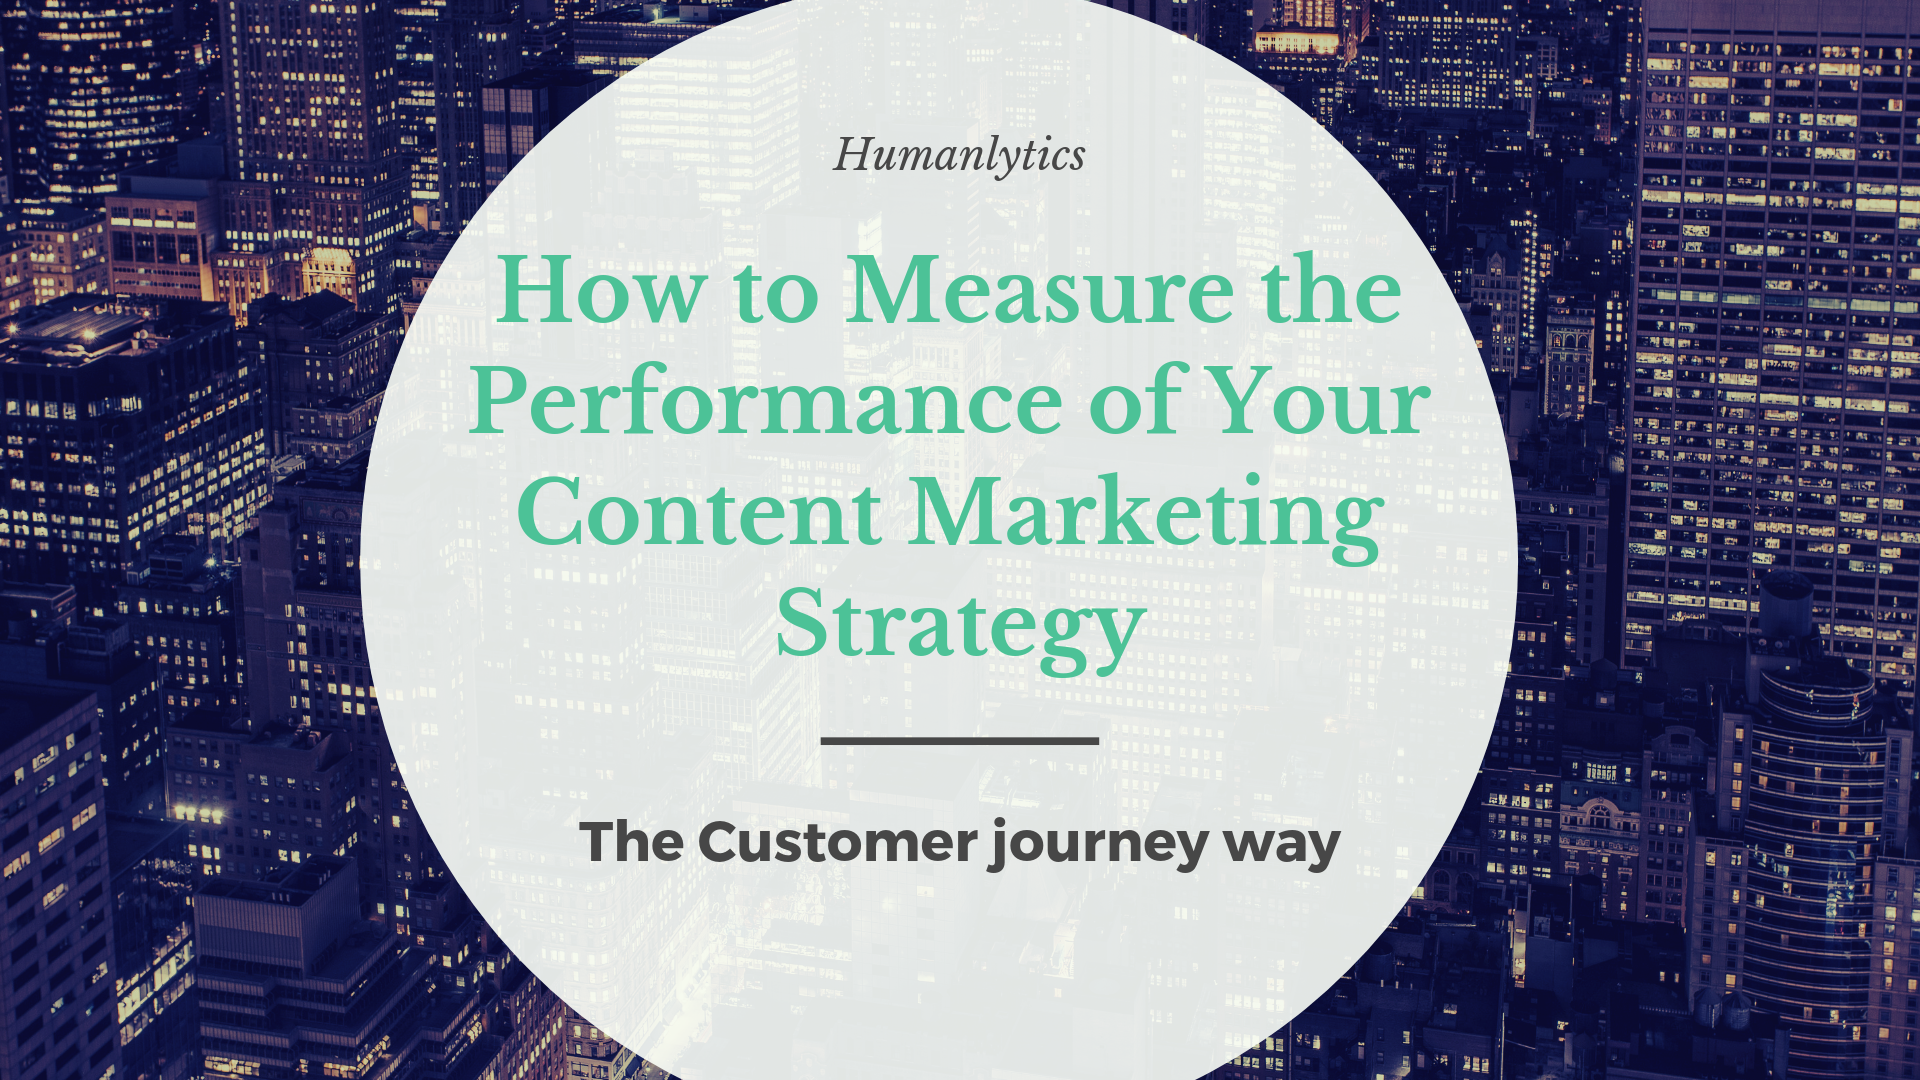 How to Measure the Performance of Your Content Marketing